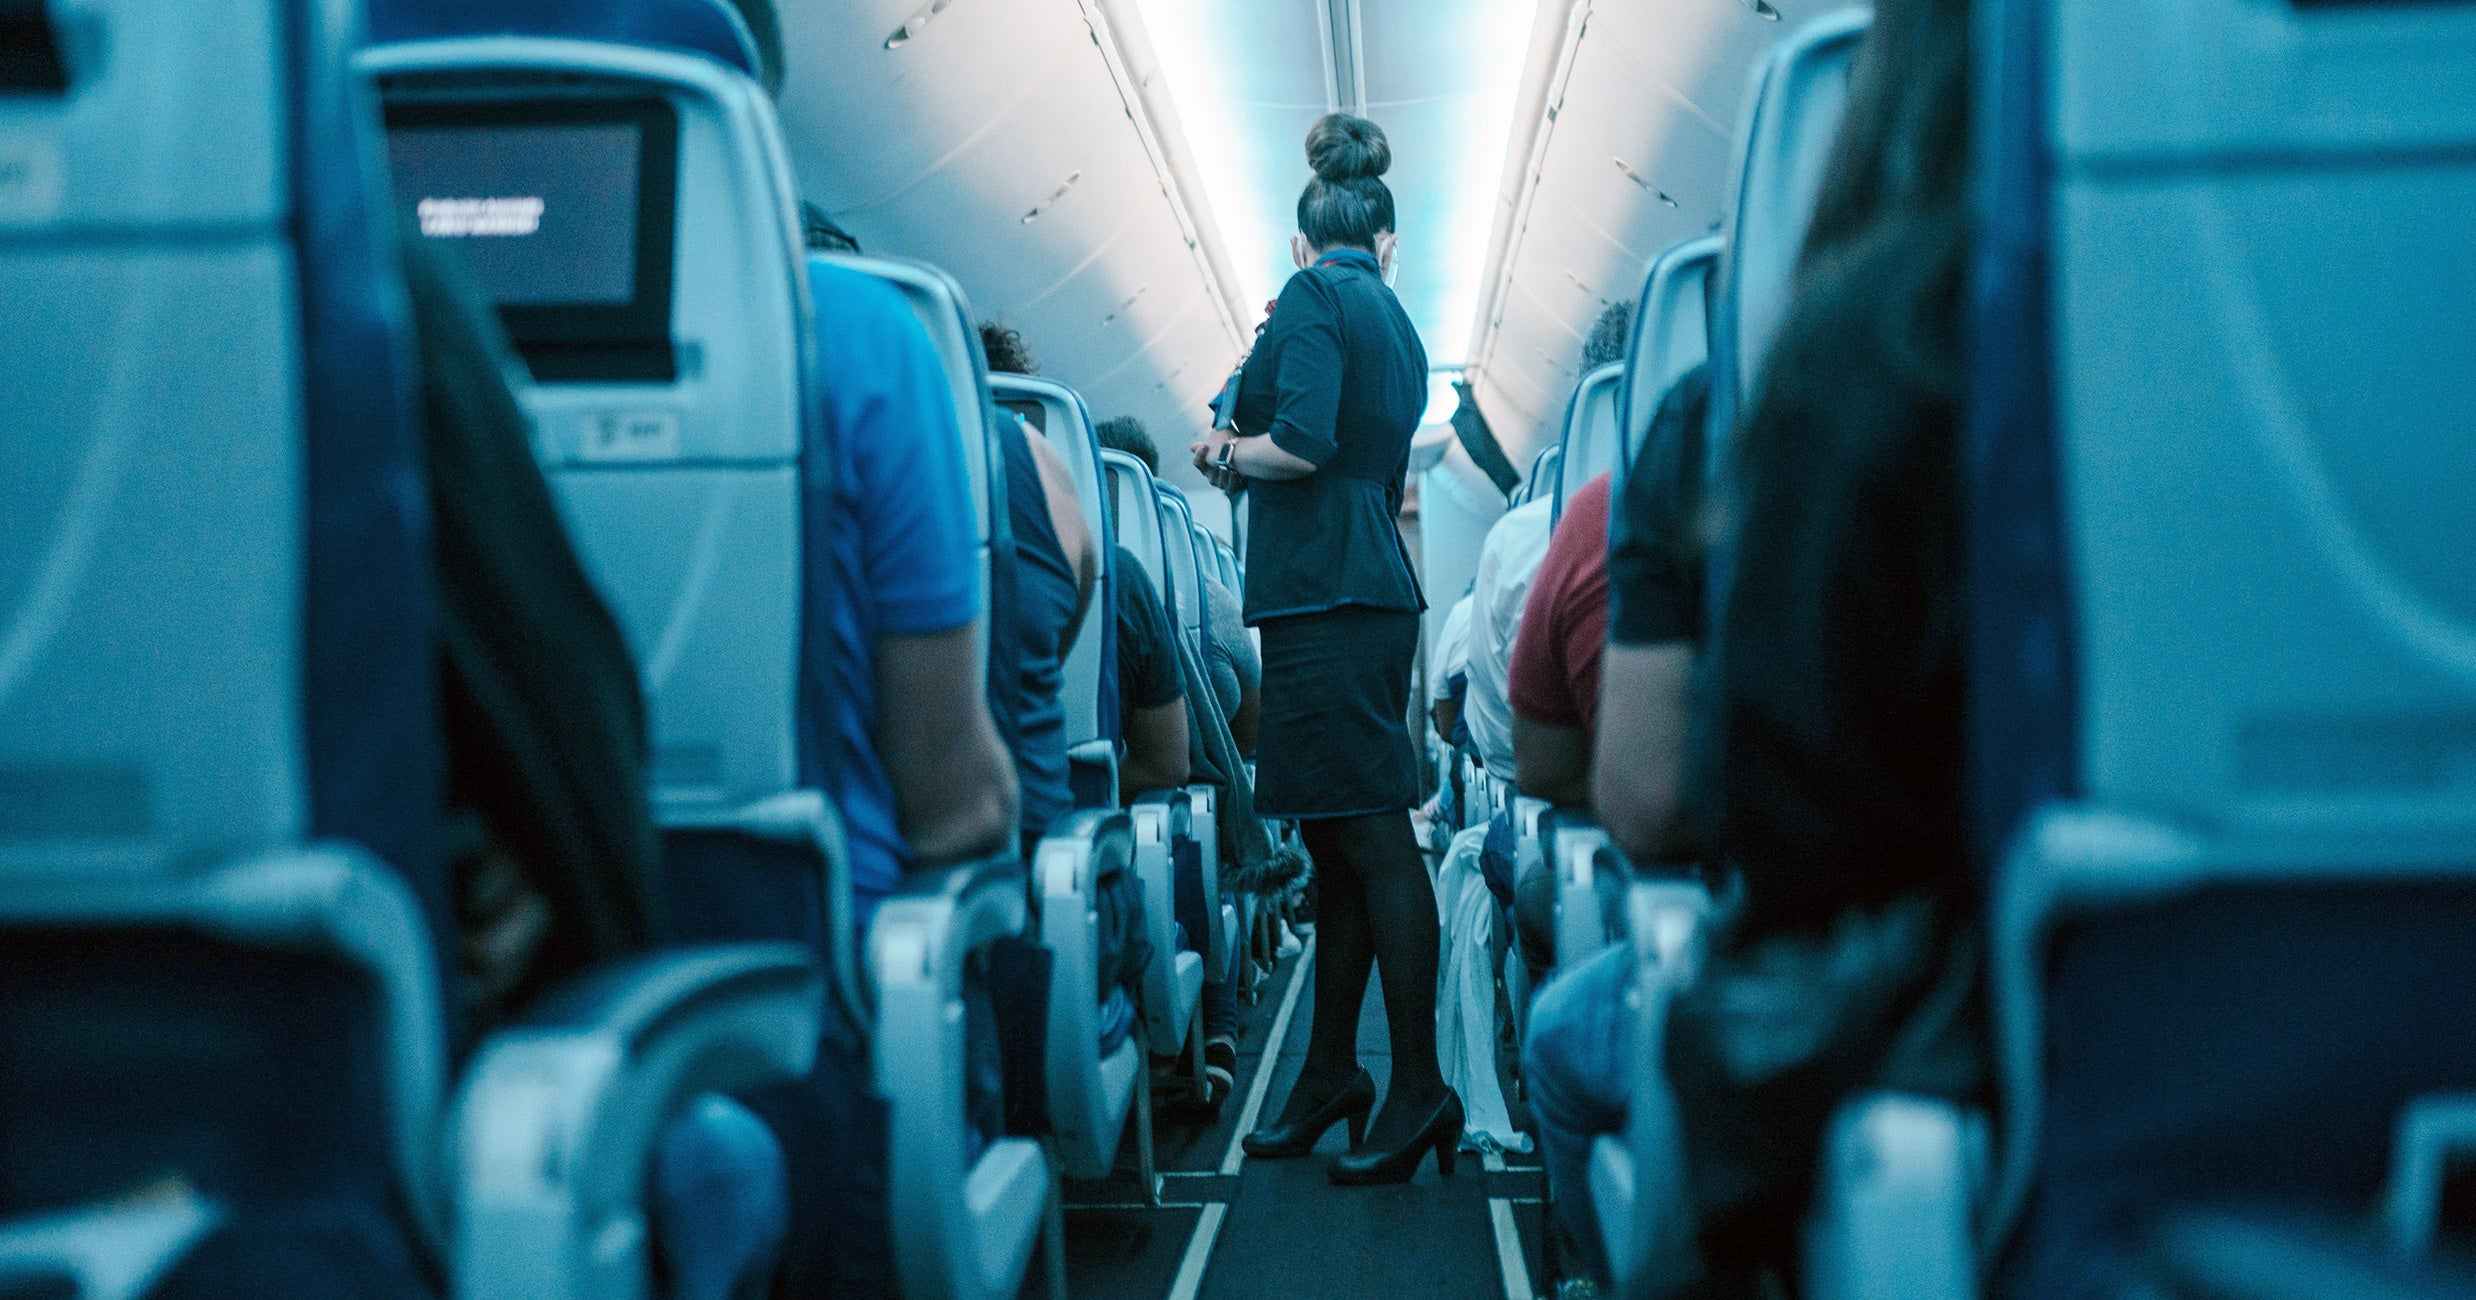 Here's Why So Many People Are Fighting On Airplanes